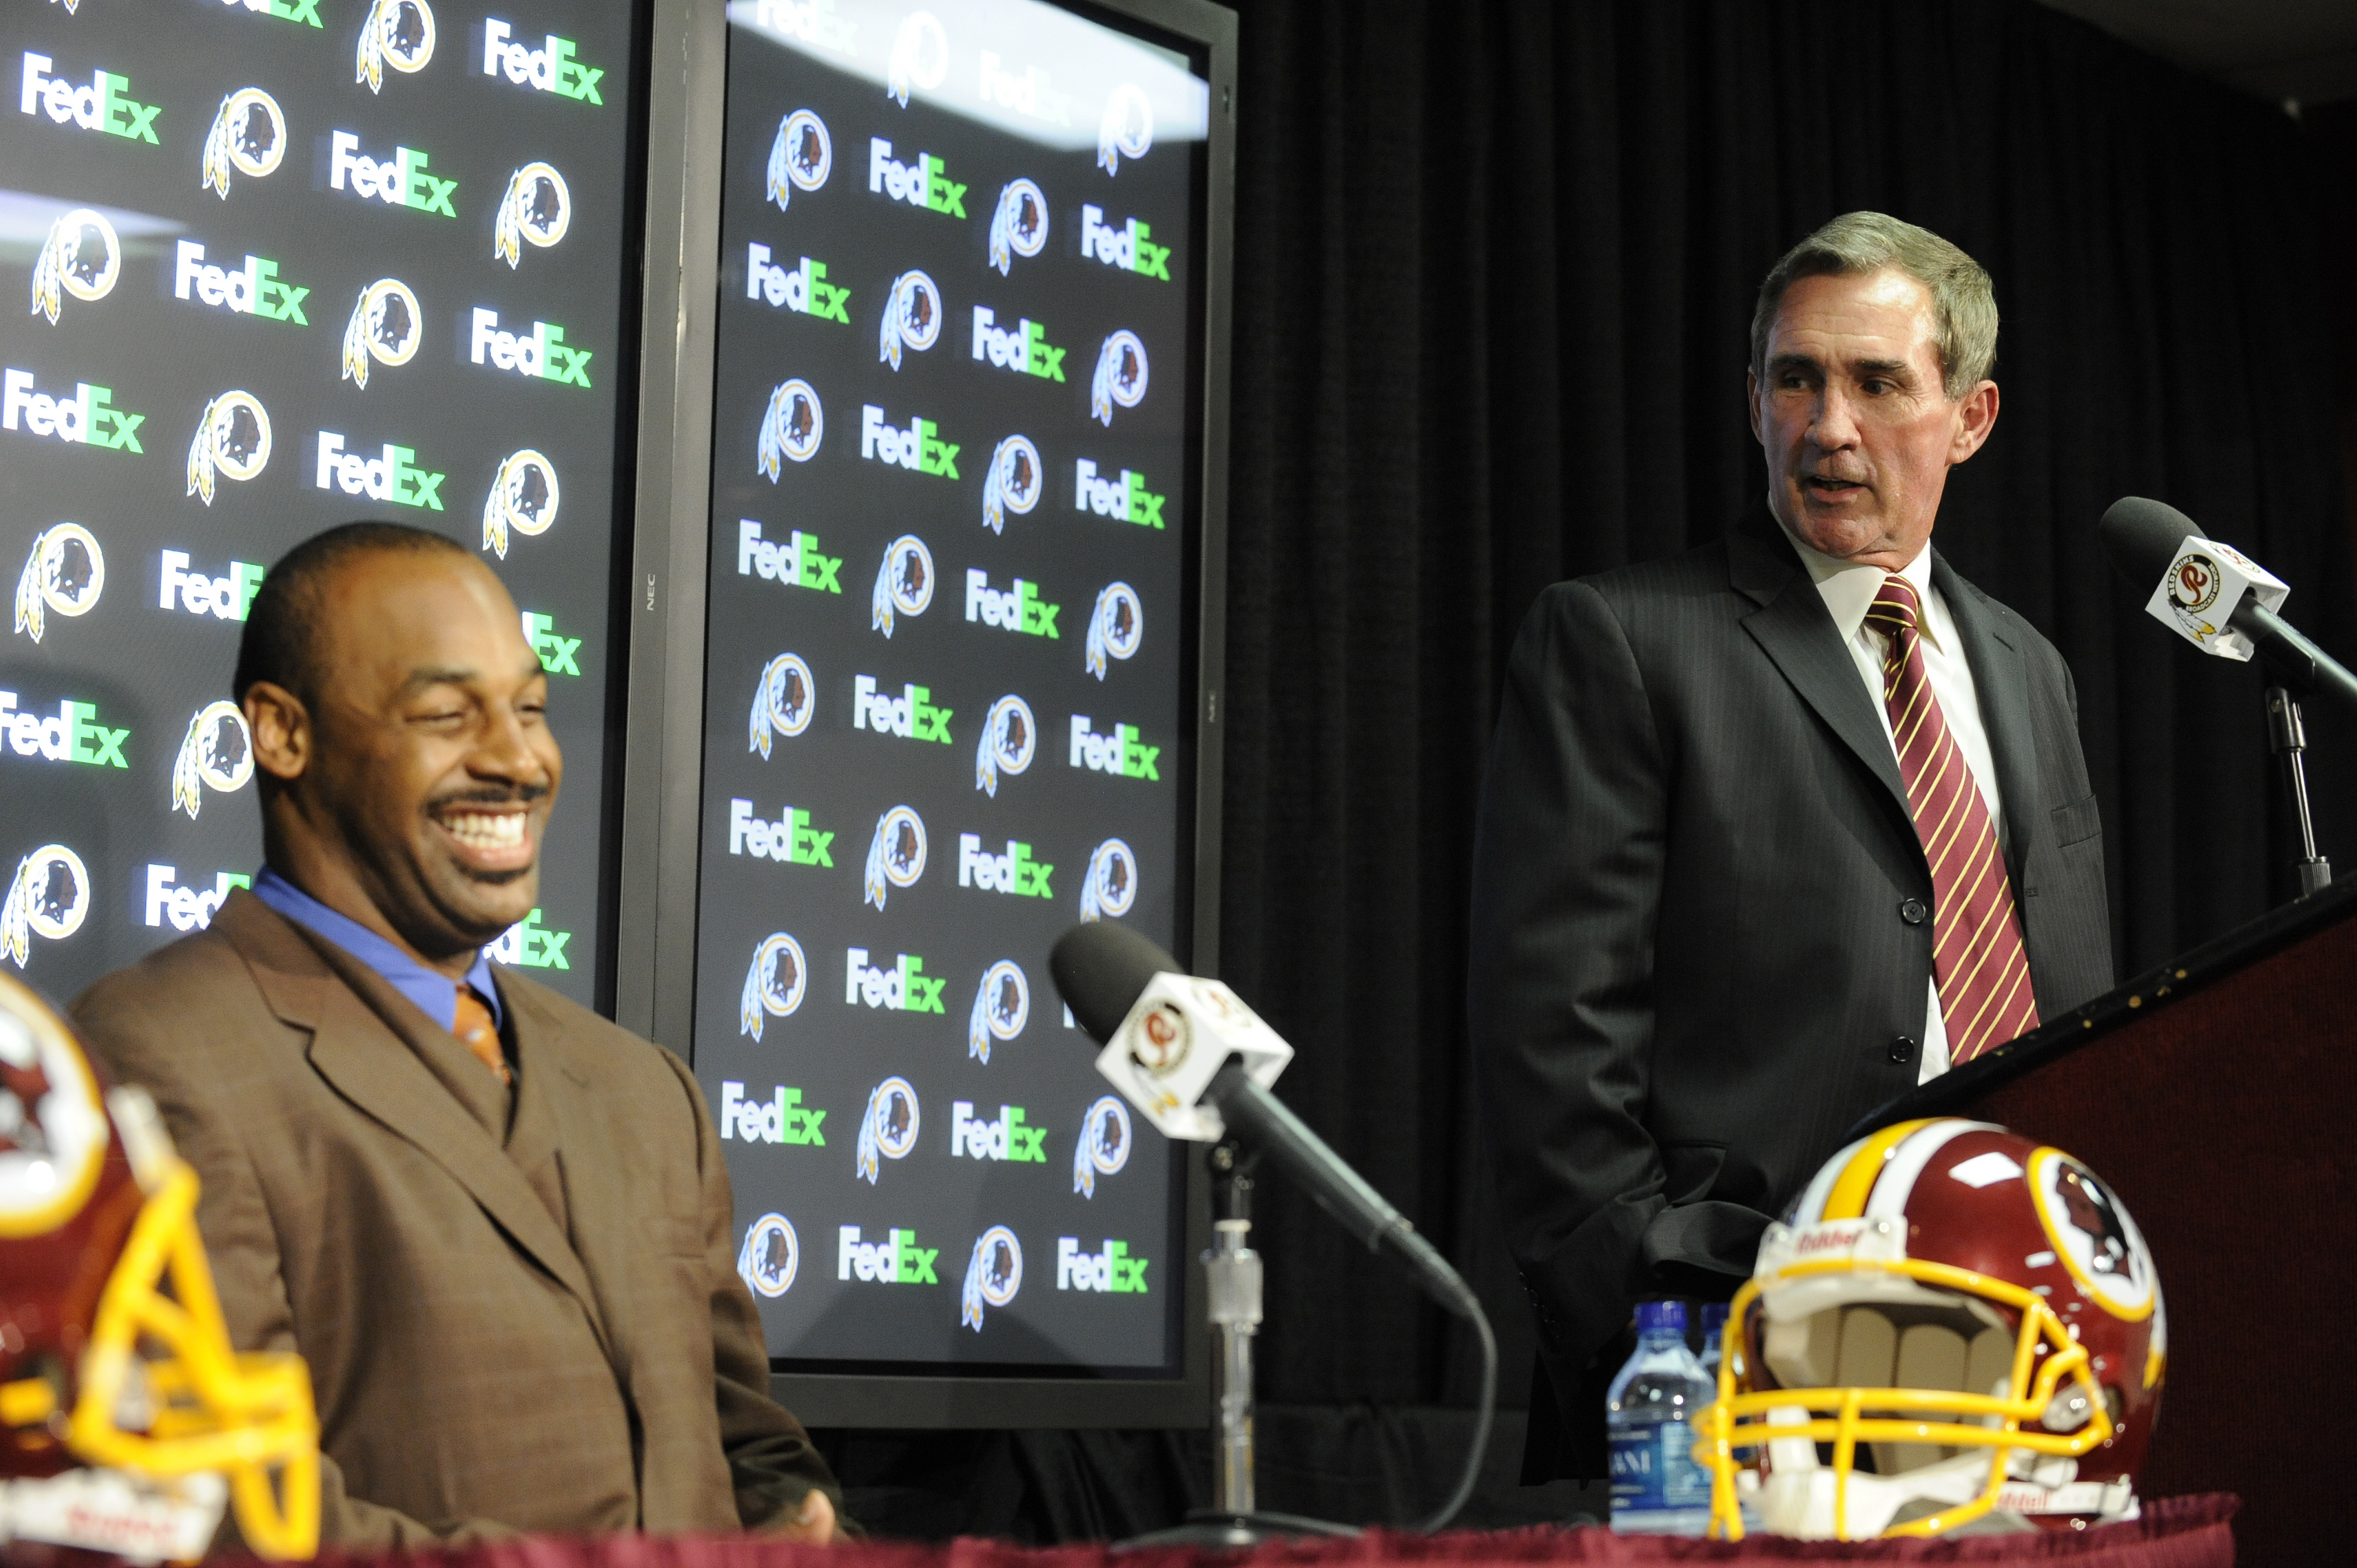 ASHURN, VA - APRIL 6:  Mike Shanahan, head coach Washington Redskins, introduces Donovan McNabb to the media on April 6, 2010 at Redskin Park in Ashburn, Virginia.  (Photo by Mitchell Layton/Getty Images)